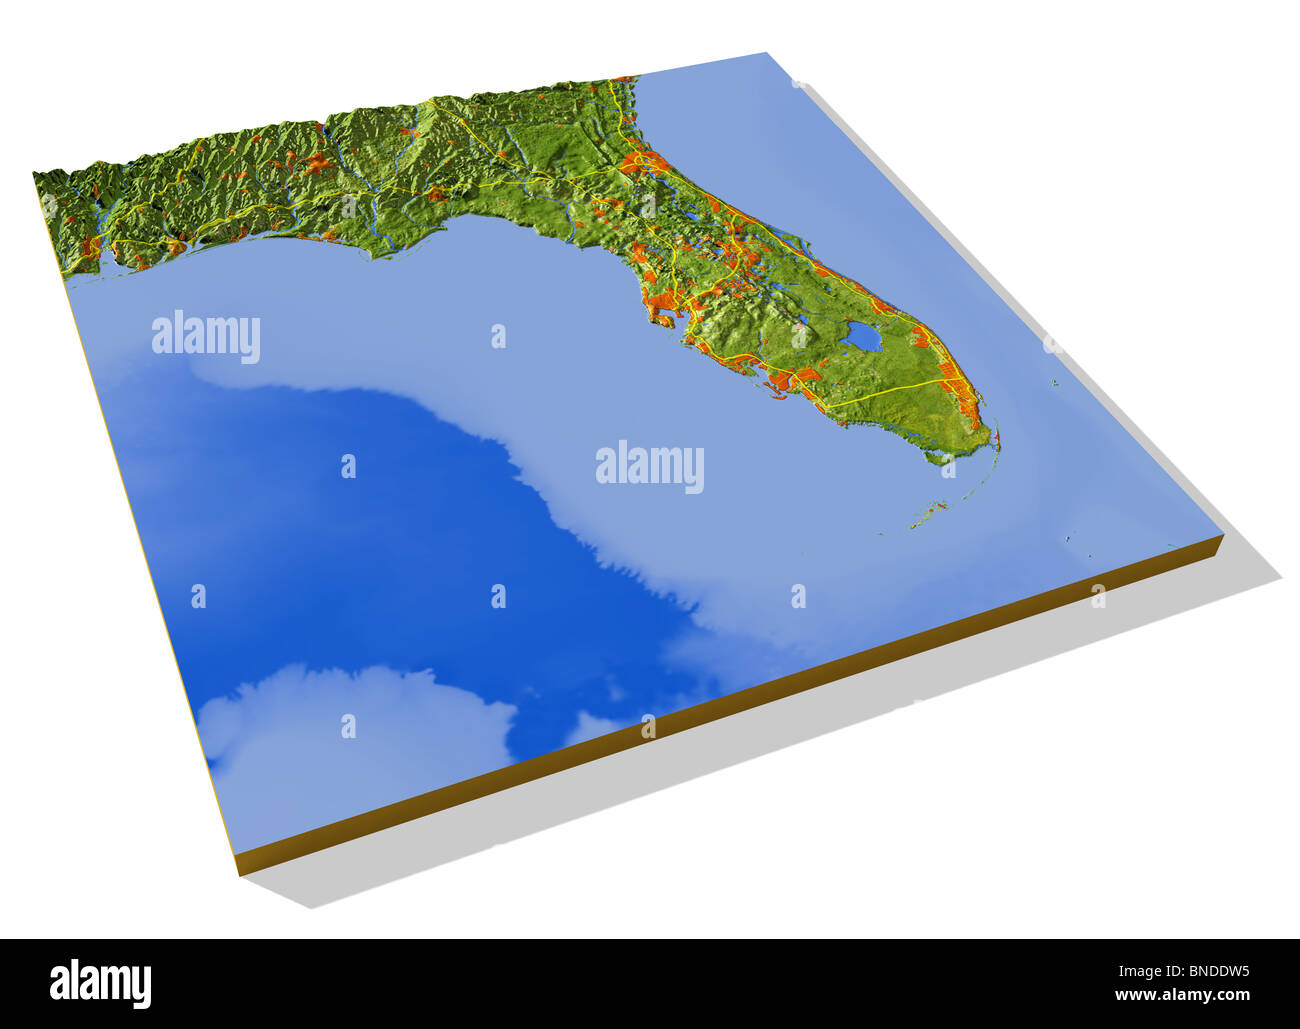 Florida, 3D relief map with urban areas and interstate highways